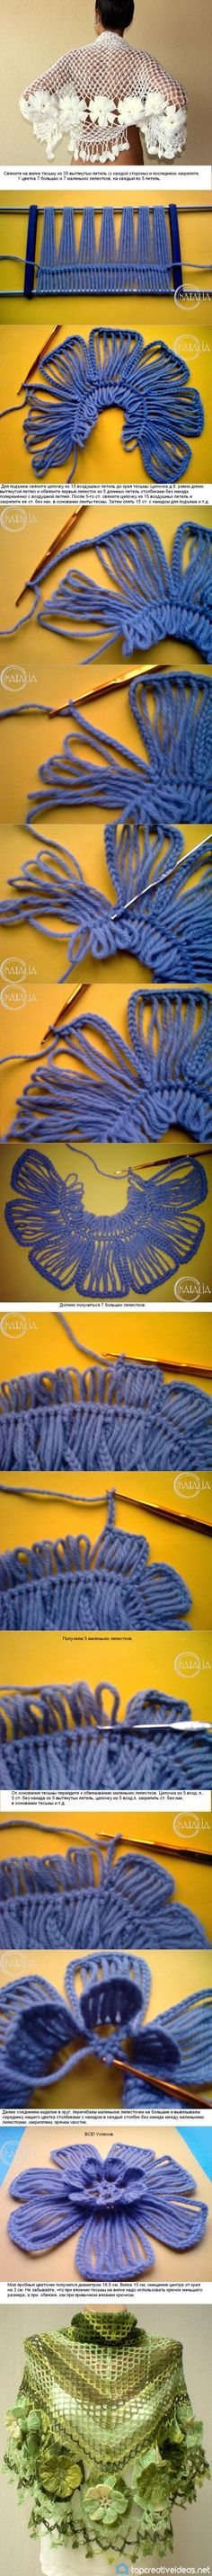 crochet flower tutorial=DIY Basic Flower with Crochet Fork and Hook Diy Crochet Flowers, Crochet Flower Tutorial, Crochet Diy, Crochet Motif, Crochet Shawl, Crochet Designs, Crochet Crafts, Crochet Stitches, Crochet Projects